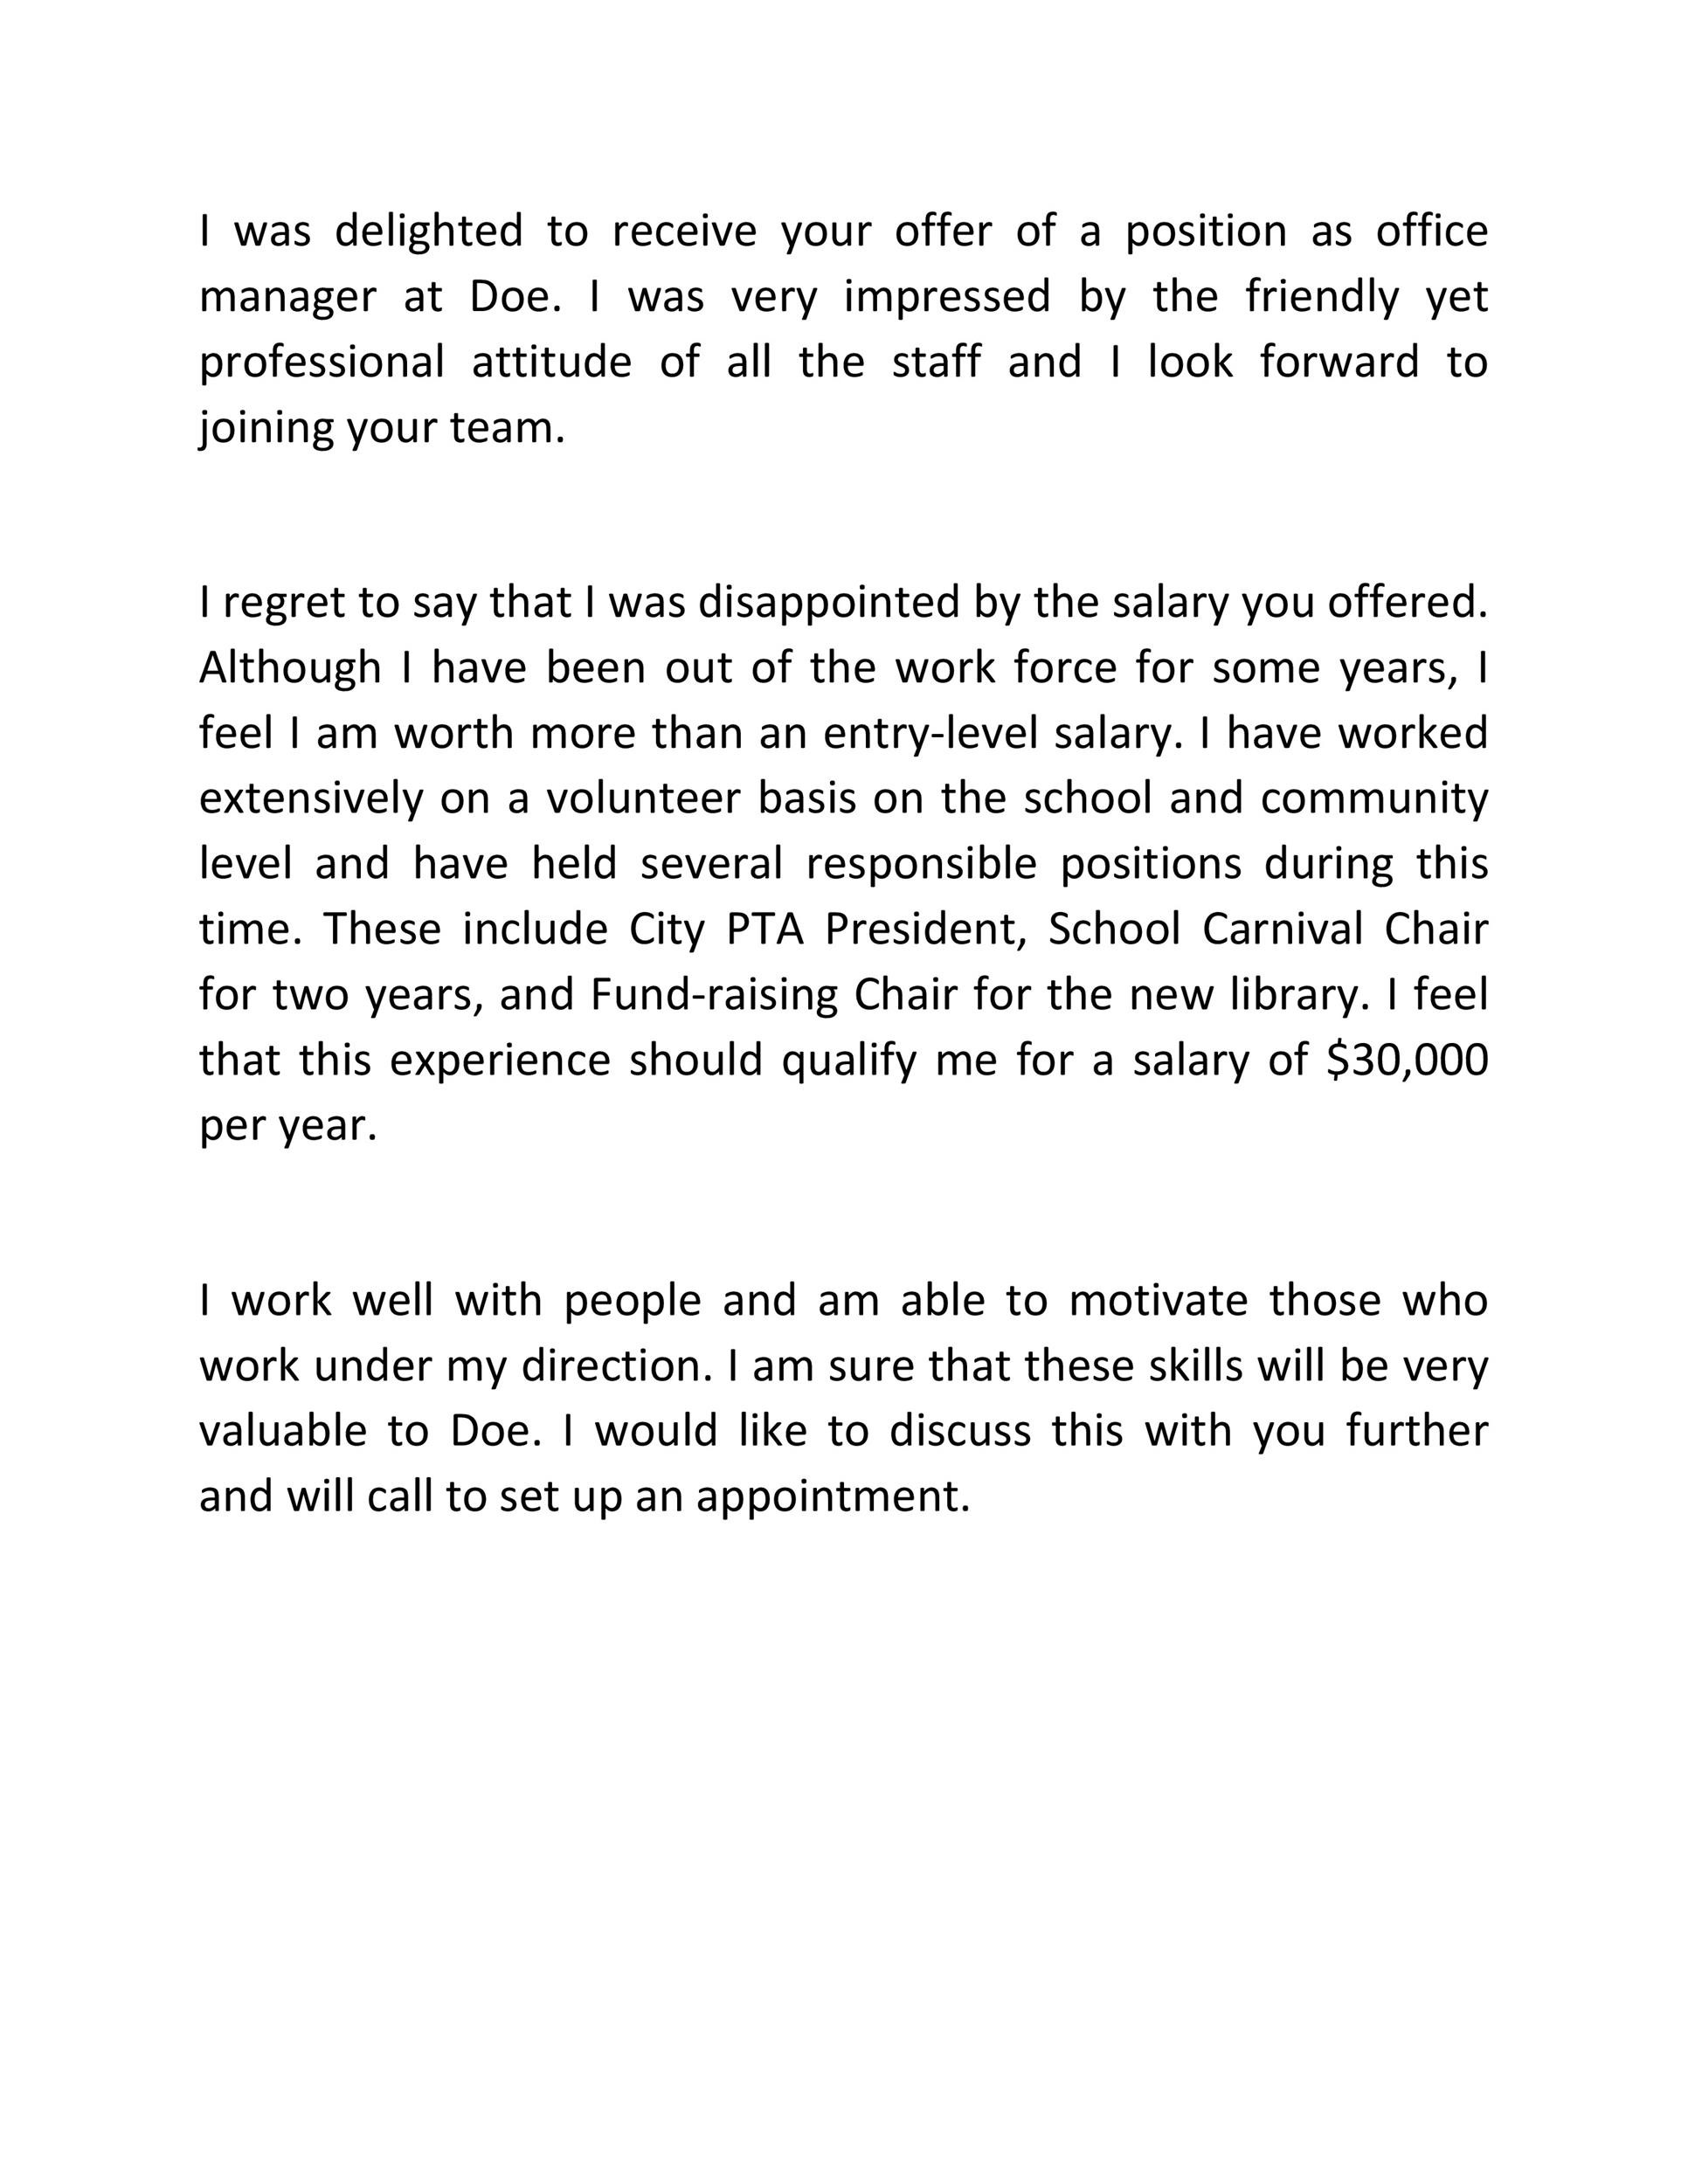 Free salary negotiation letter 41